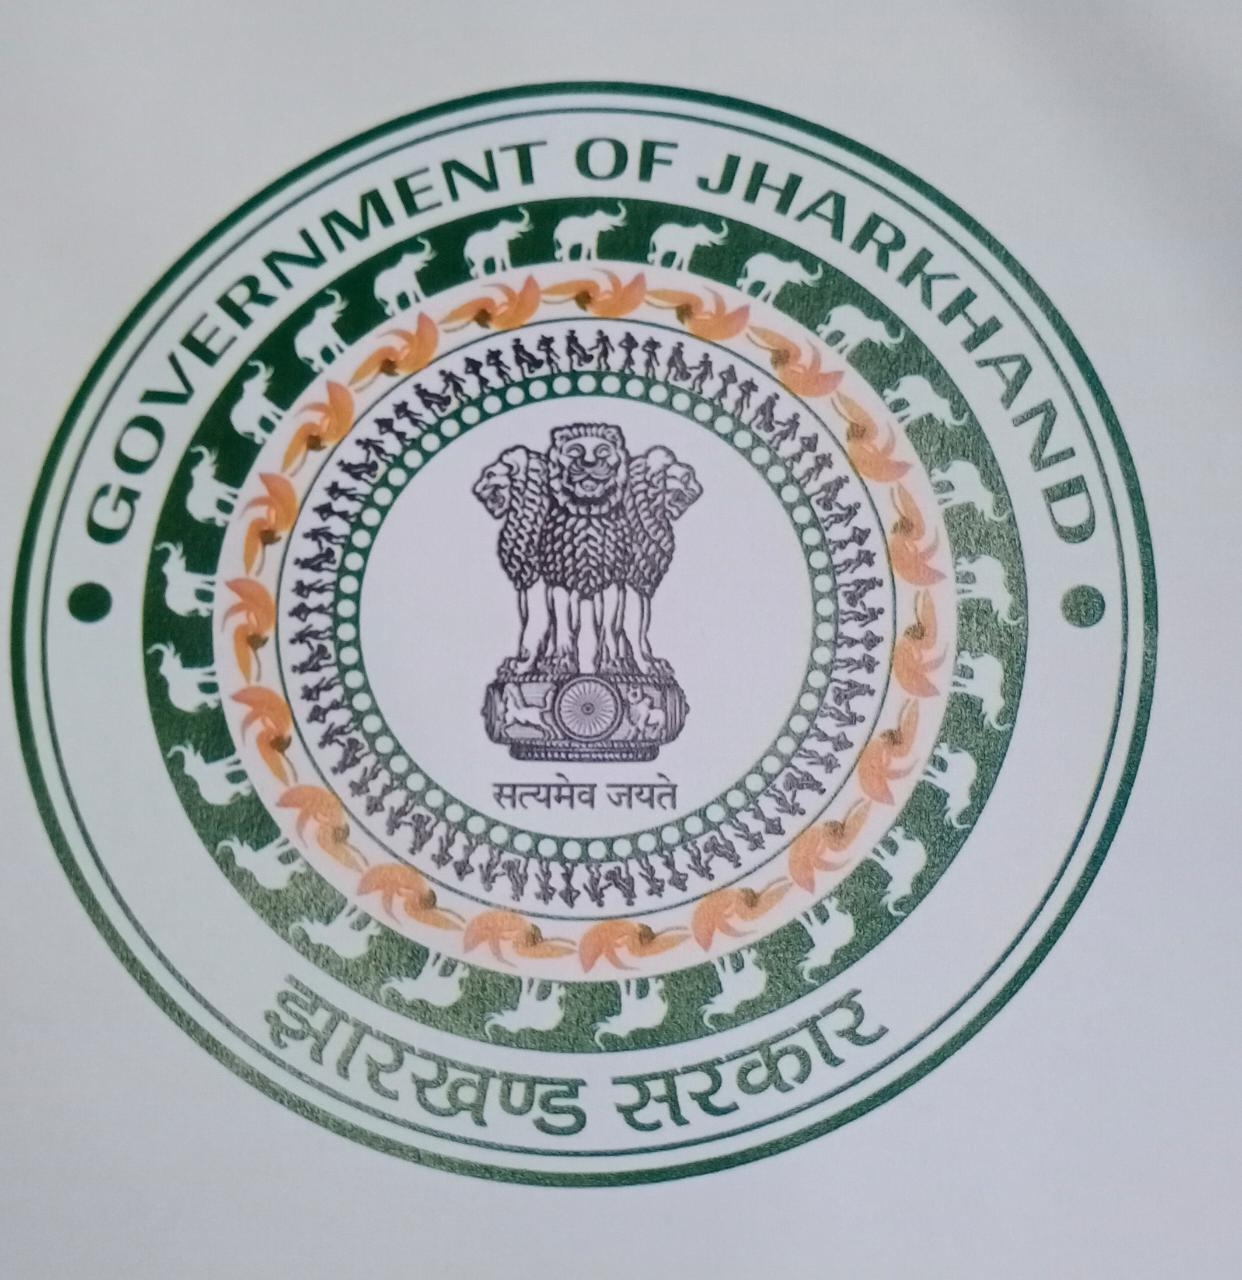 <p>New logo of the Jharkhand government released officially.</p>